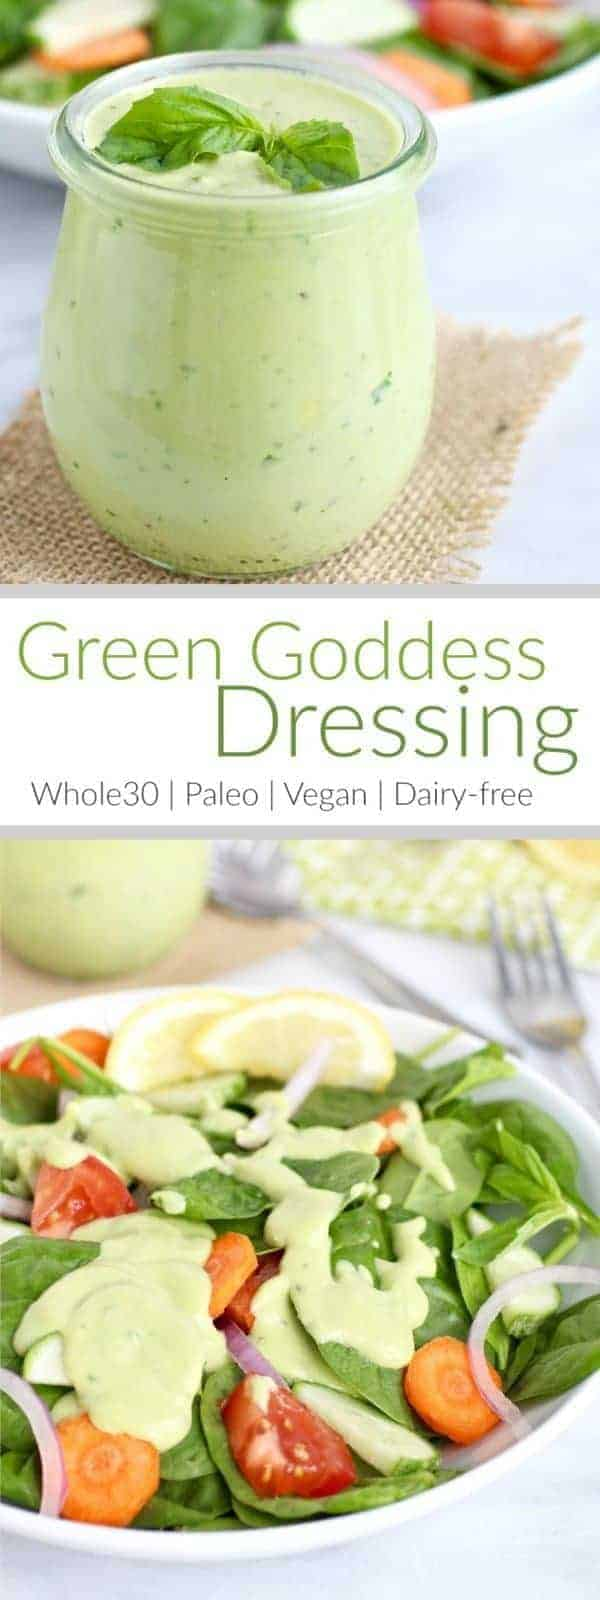 Green Goddess Dressing - The Real Food Dietitians